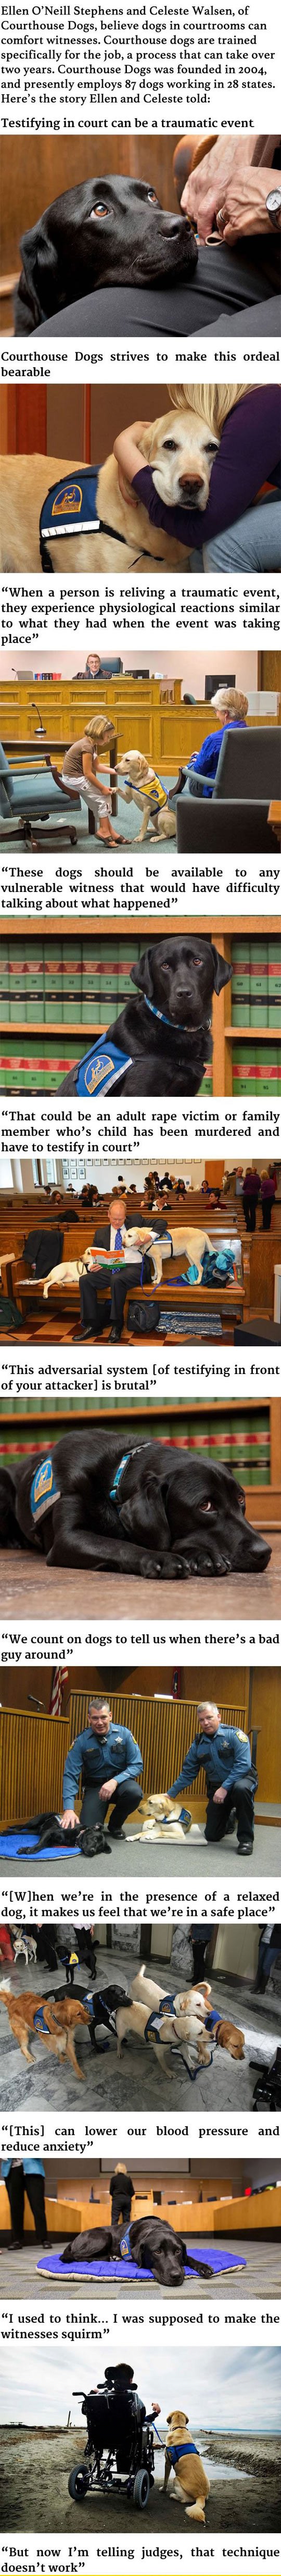 cool-dogs-helping-witnesses-court